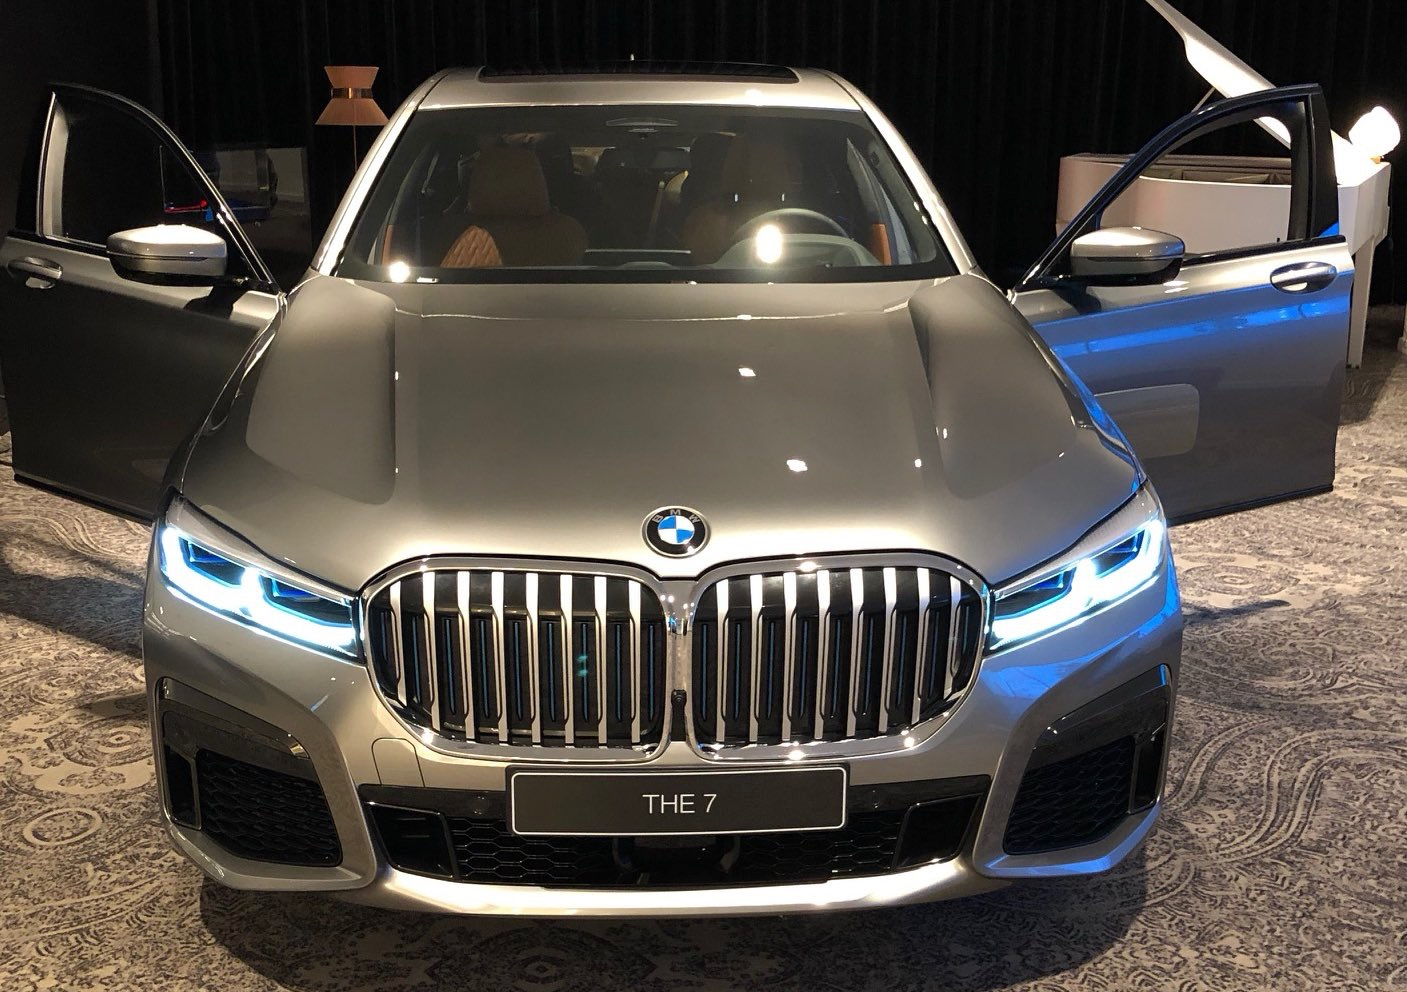 2020 Bmw 7 Series Here S Another Look At The Facelift